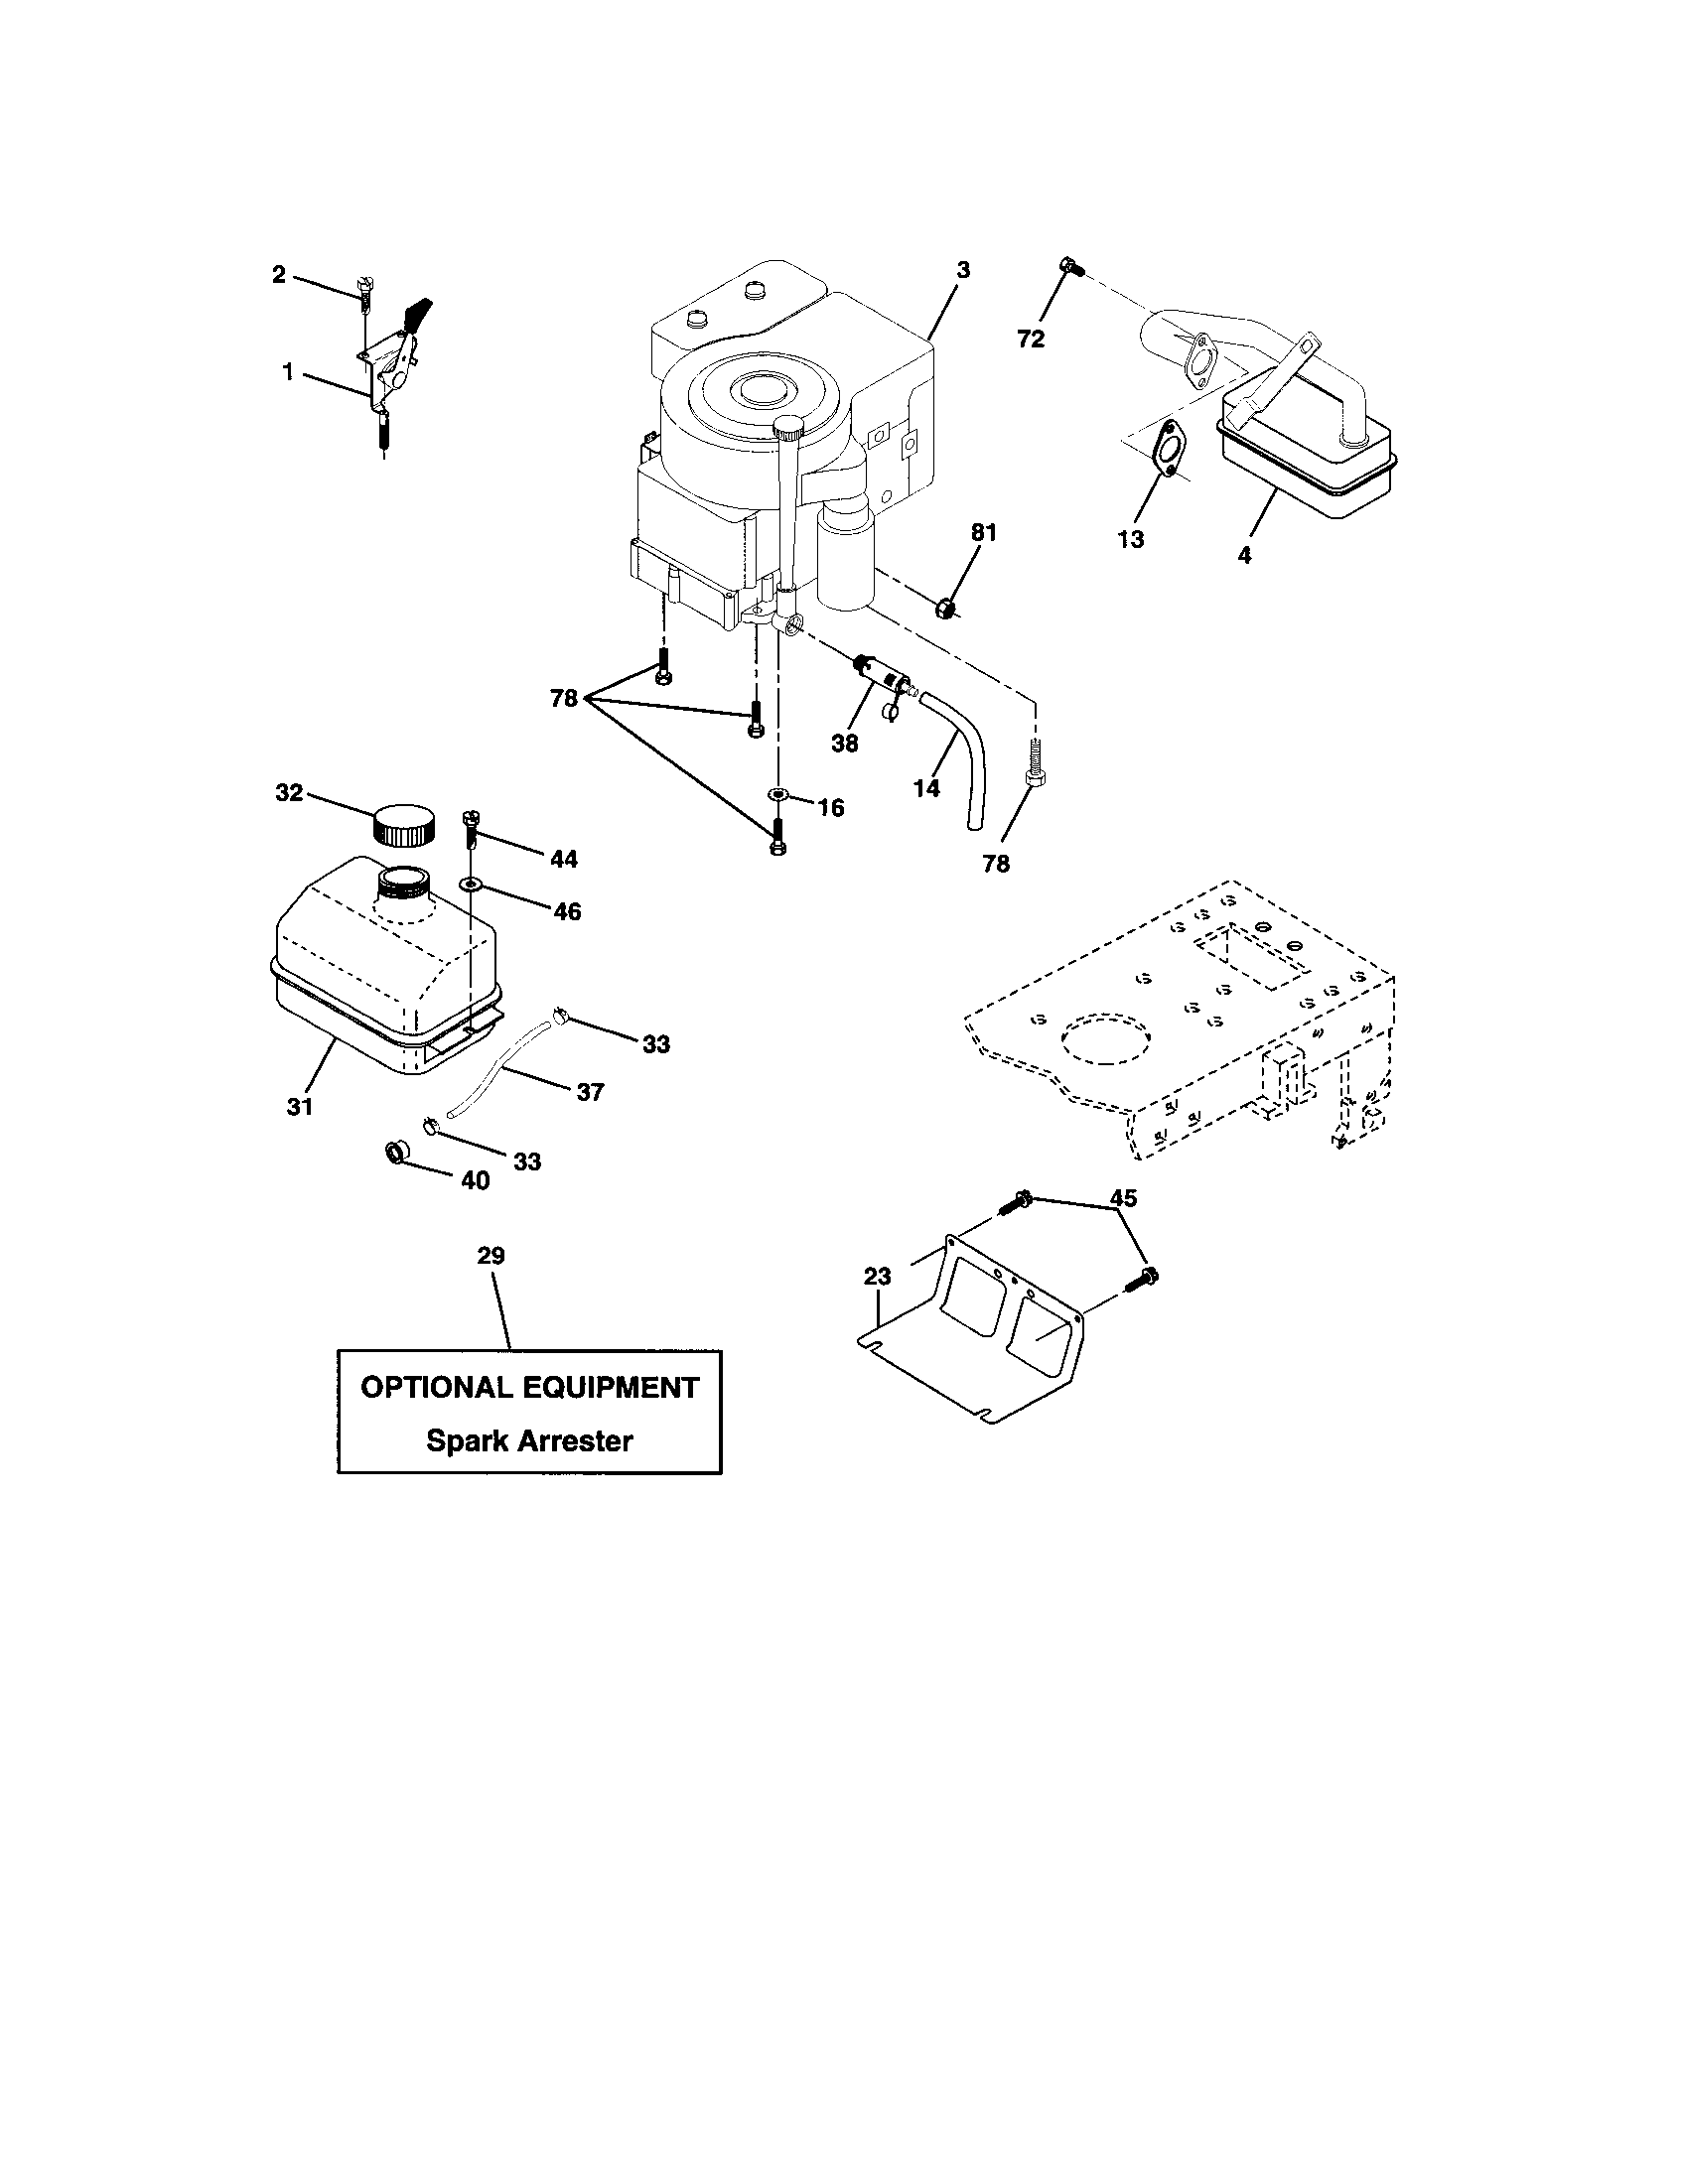 Craftsman model 917273760 lawn, tractor genuine parts